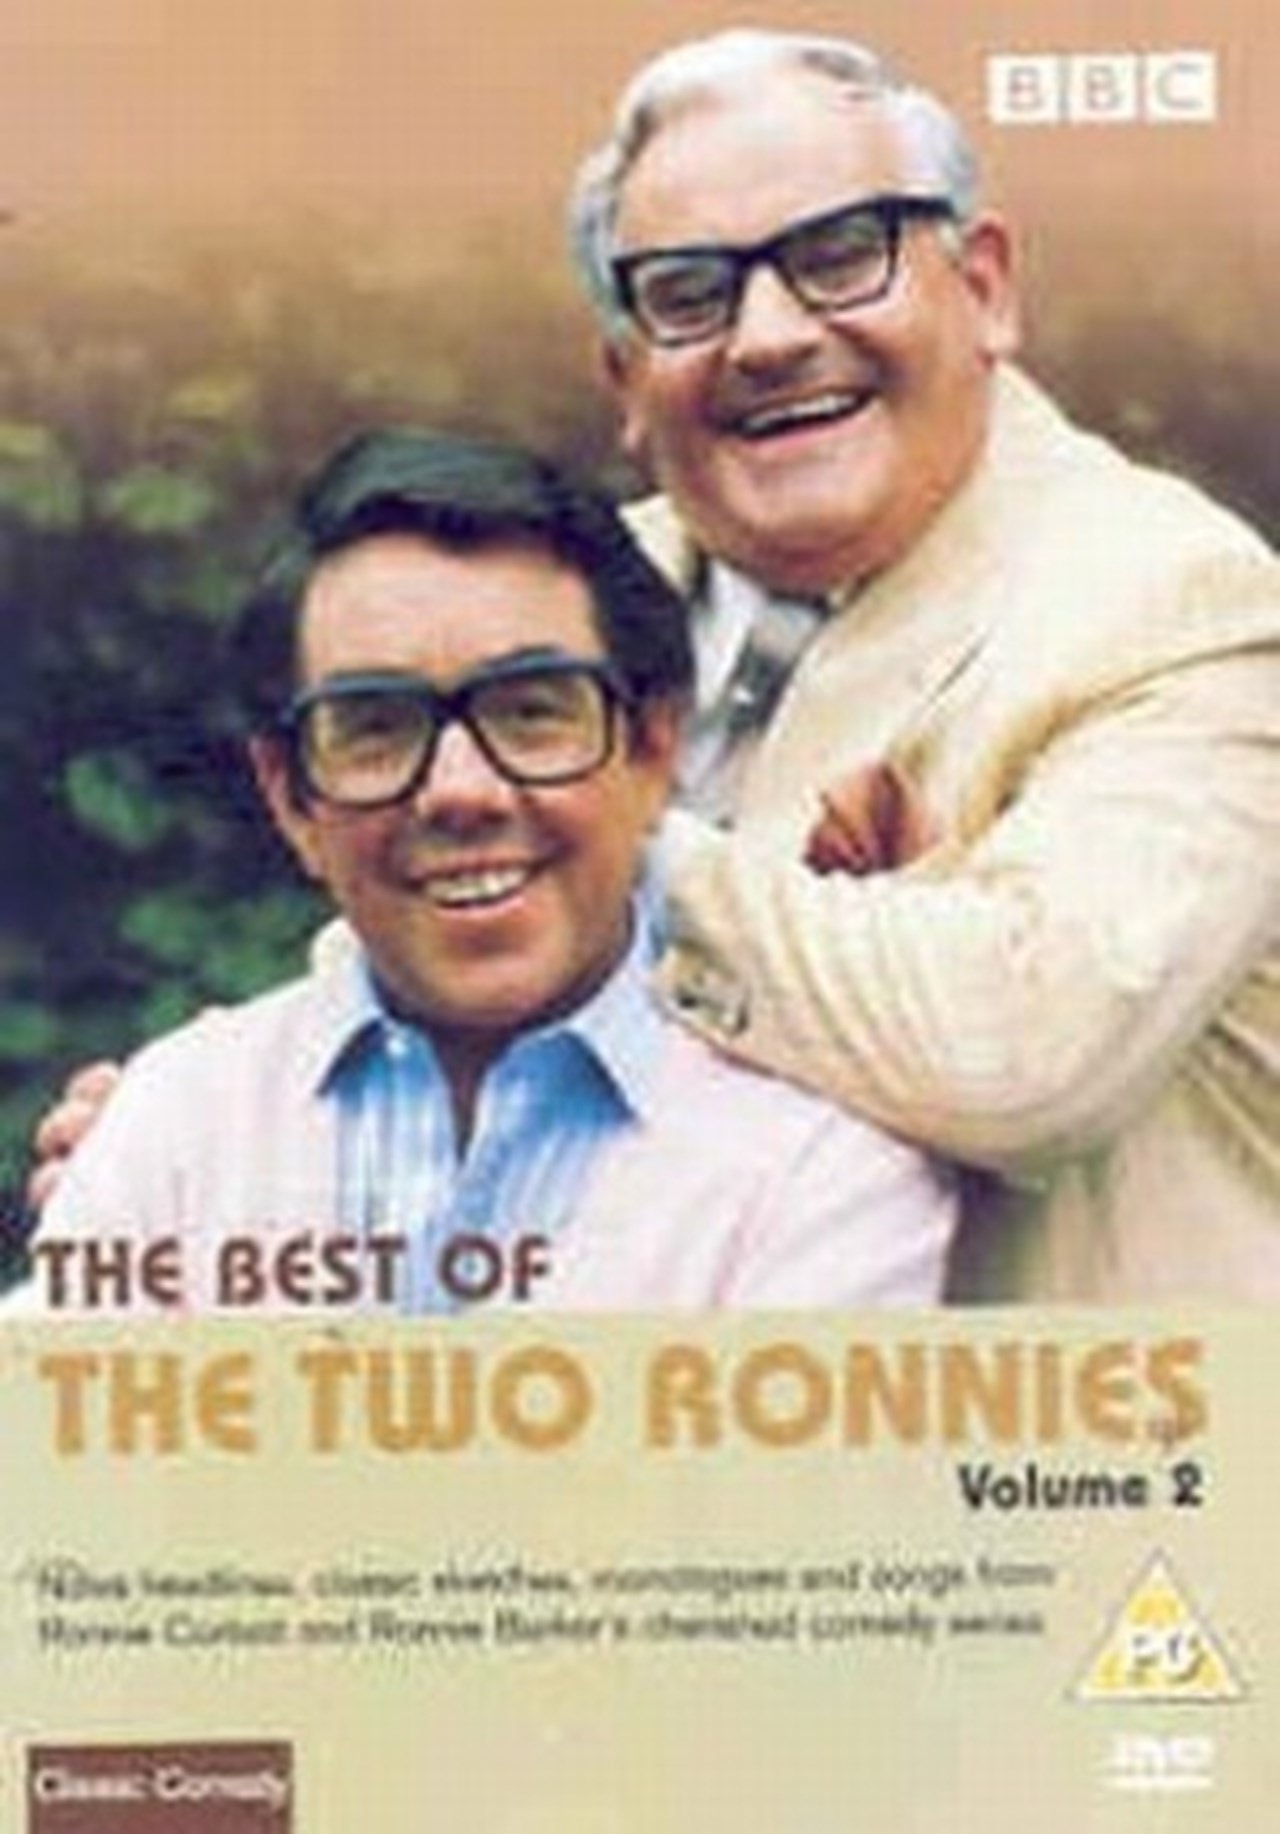 The Two Ronnies: Best of - Volume 2 - 1